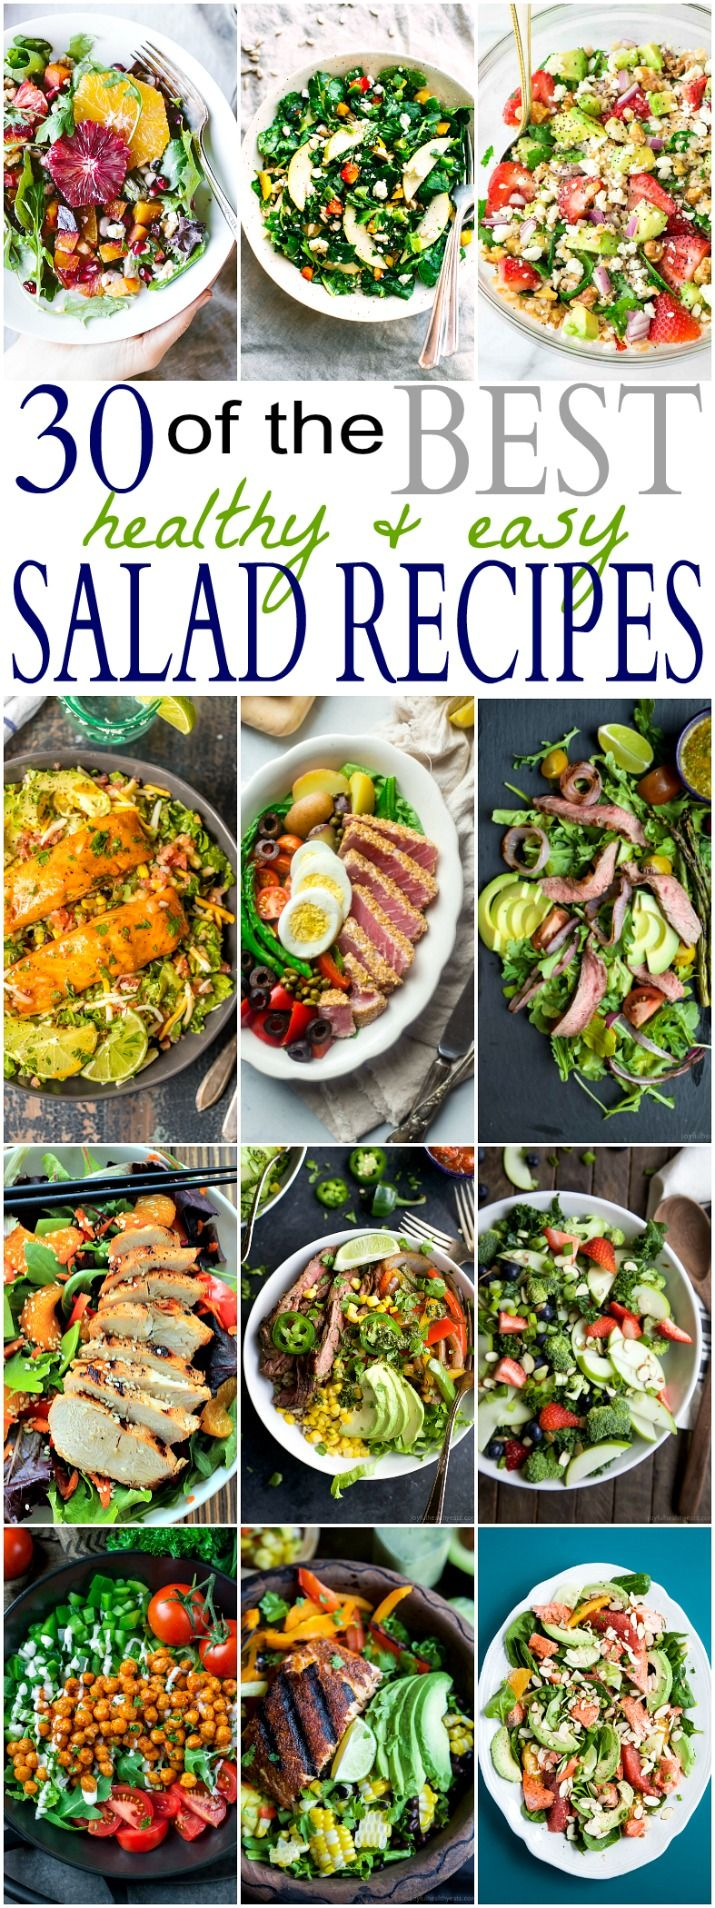 30 of the BEST HEALTHY & EASY SALAD RECIPES out there! Easy, Fresh, Light, and Quick to throw together Salad Recipes your family will love having on the dinner table!